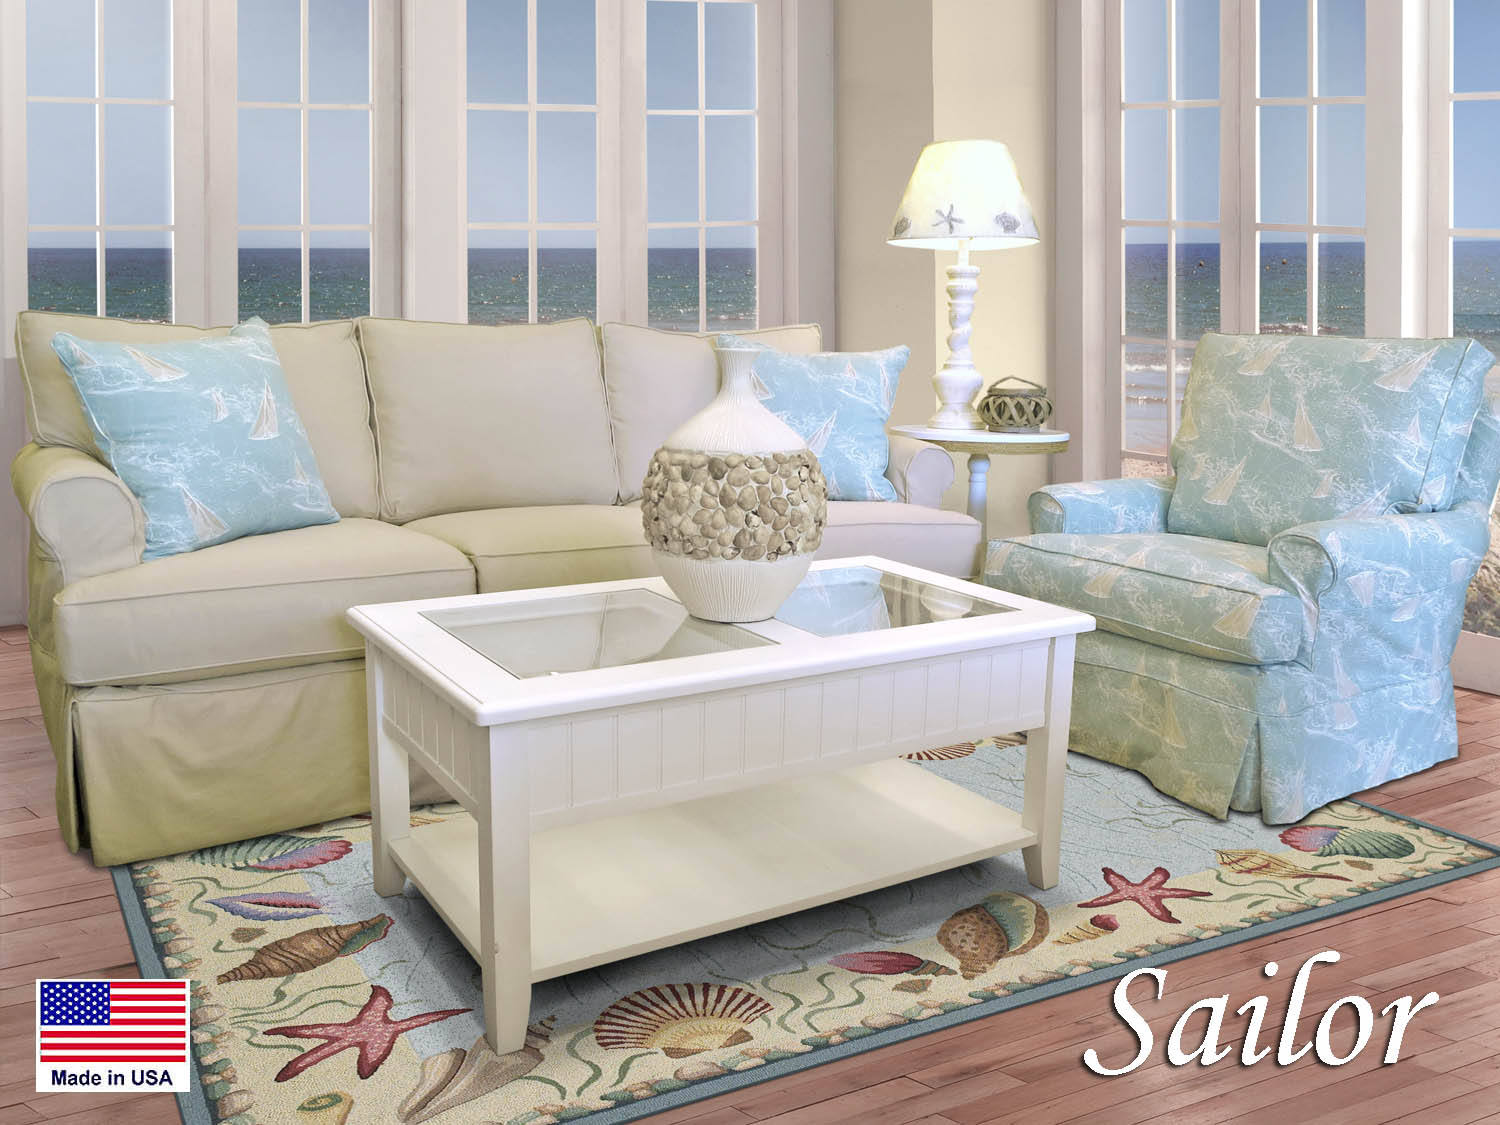 Silpcovered, Slip covered, Sofa, Swivel Glider, Living Room, Den, Family Room, Fabric, Coastal, Seaside, Casual, Cottage, Nautical, Cape Cod, Made in USA, Barbo's Furniture